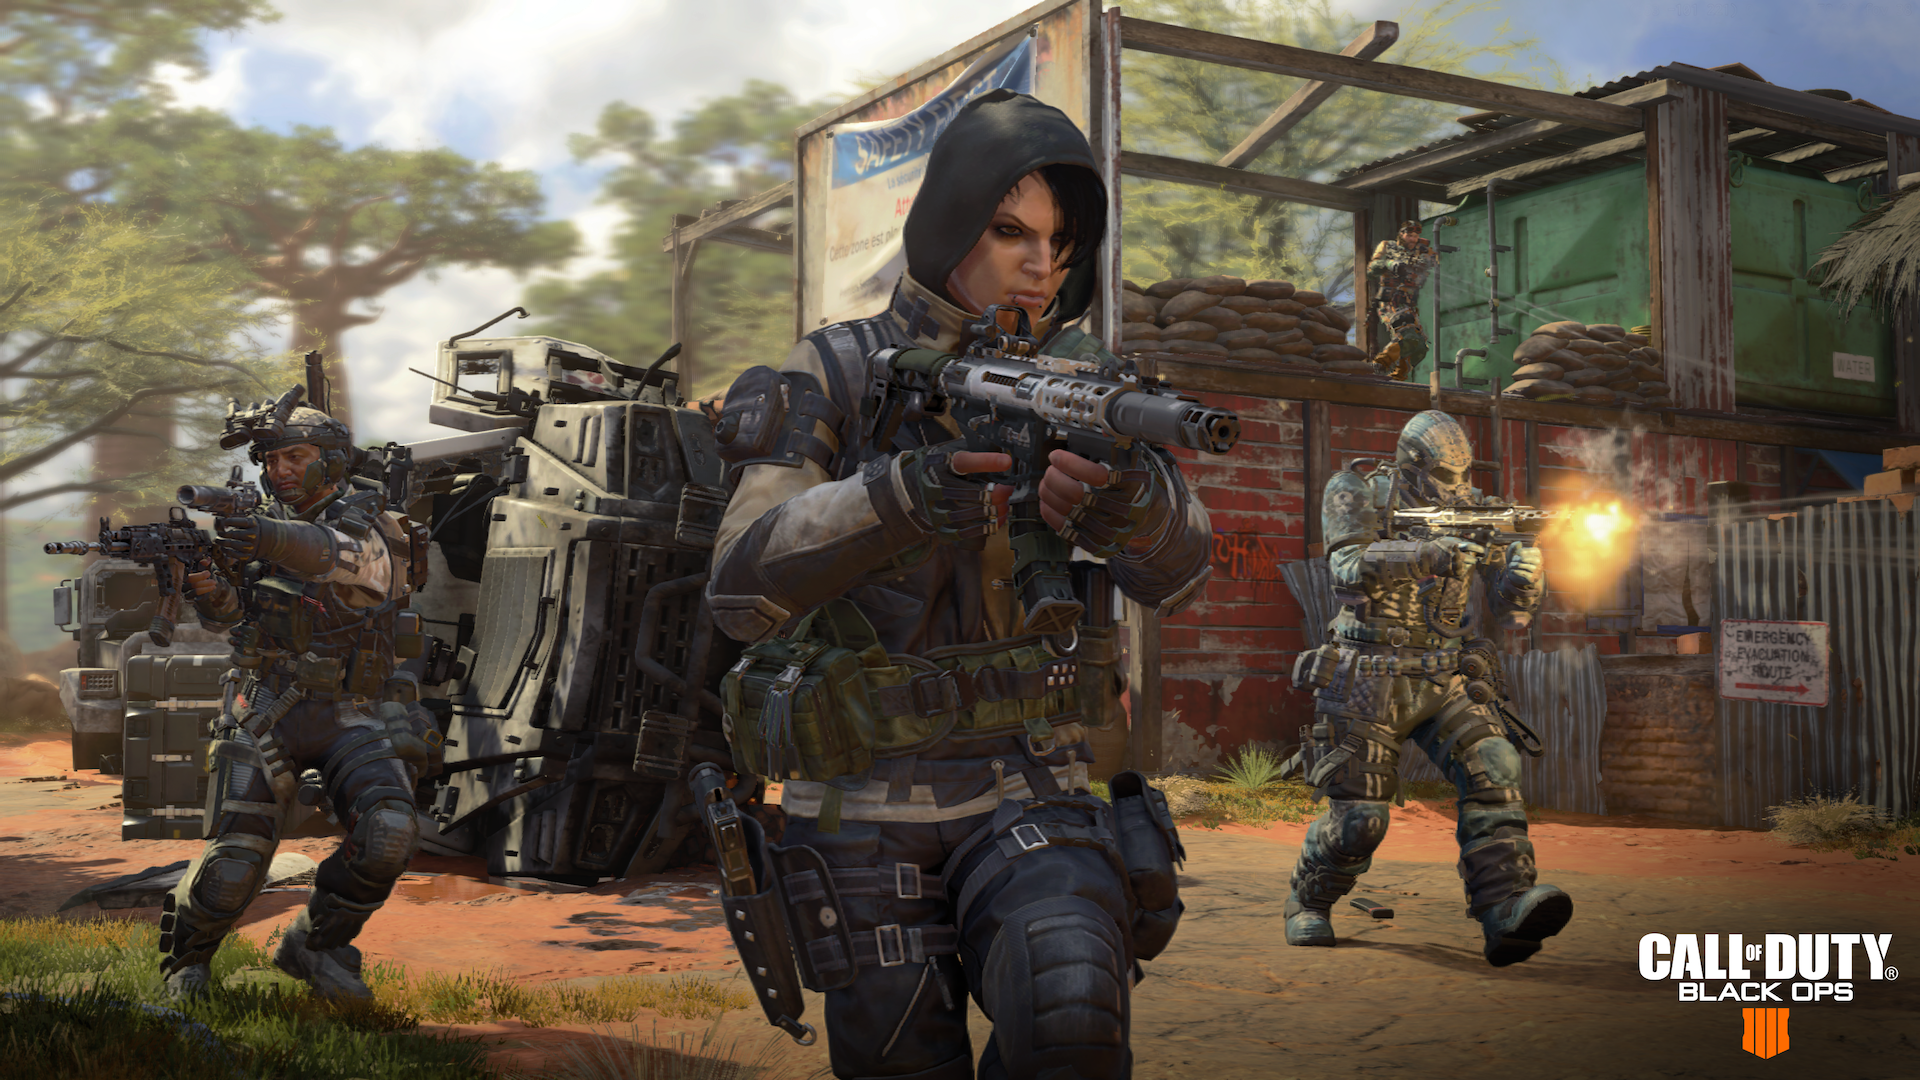 Patch Update V1 10 For Call Of Duty Black Ops 4 Now Live